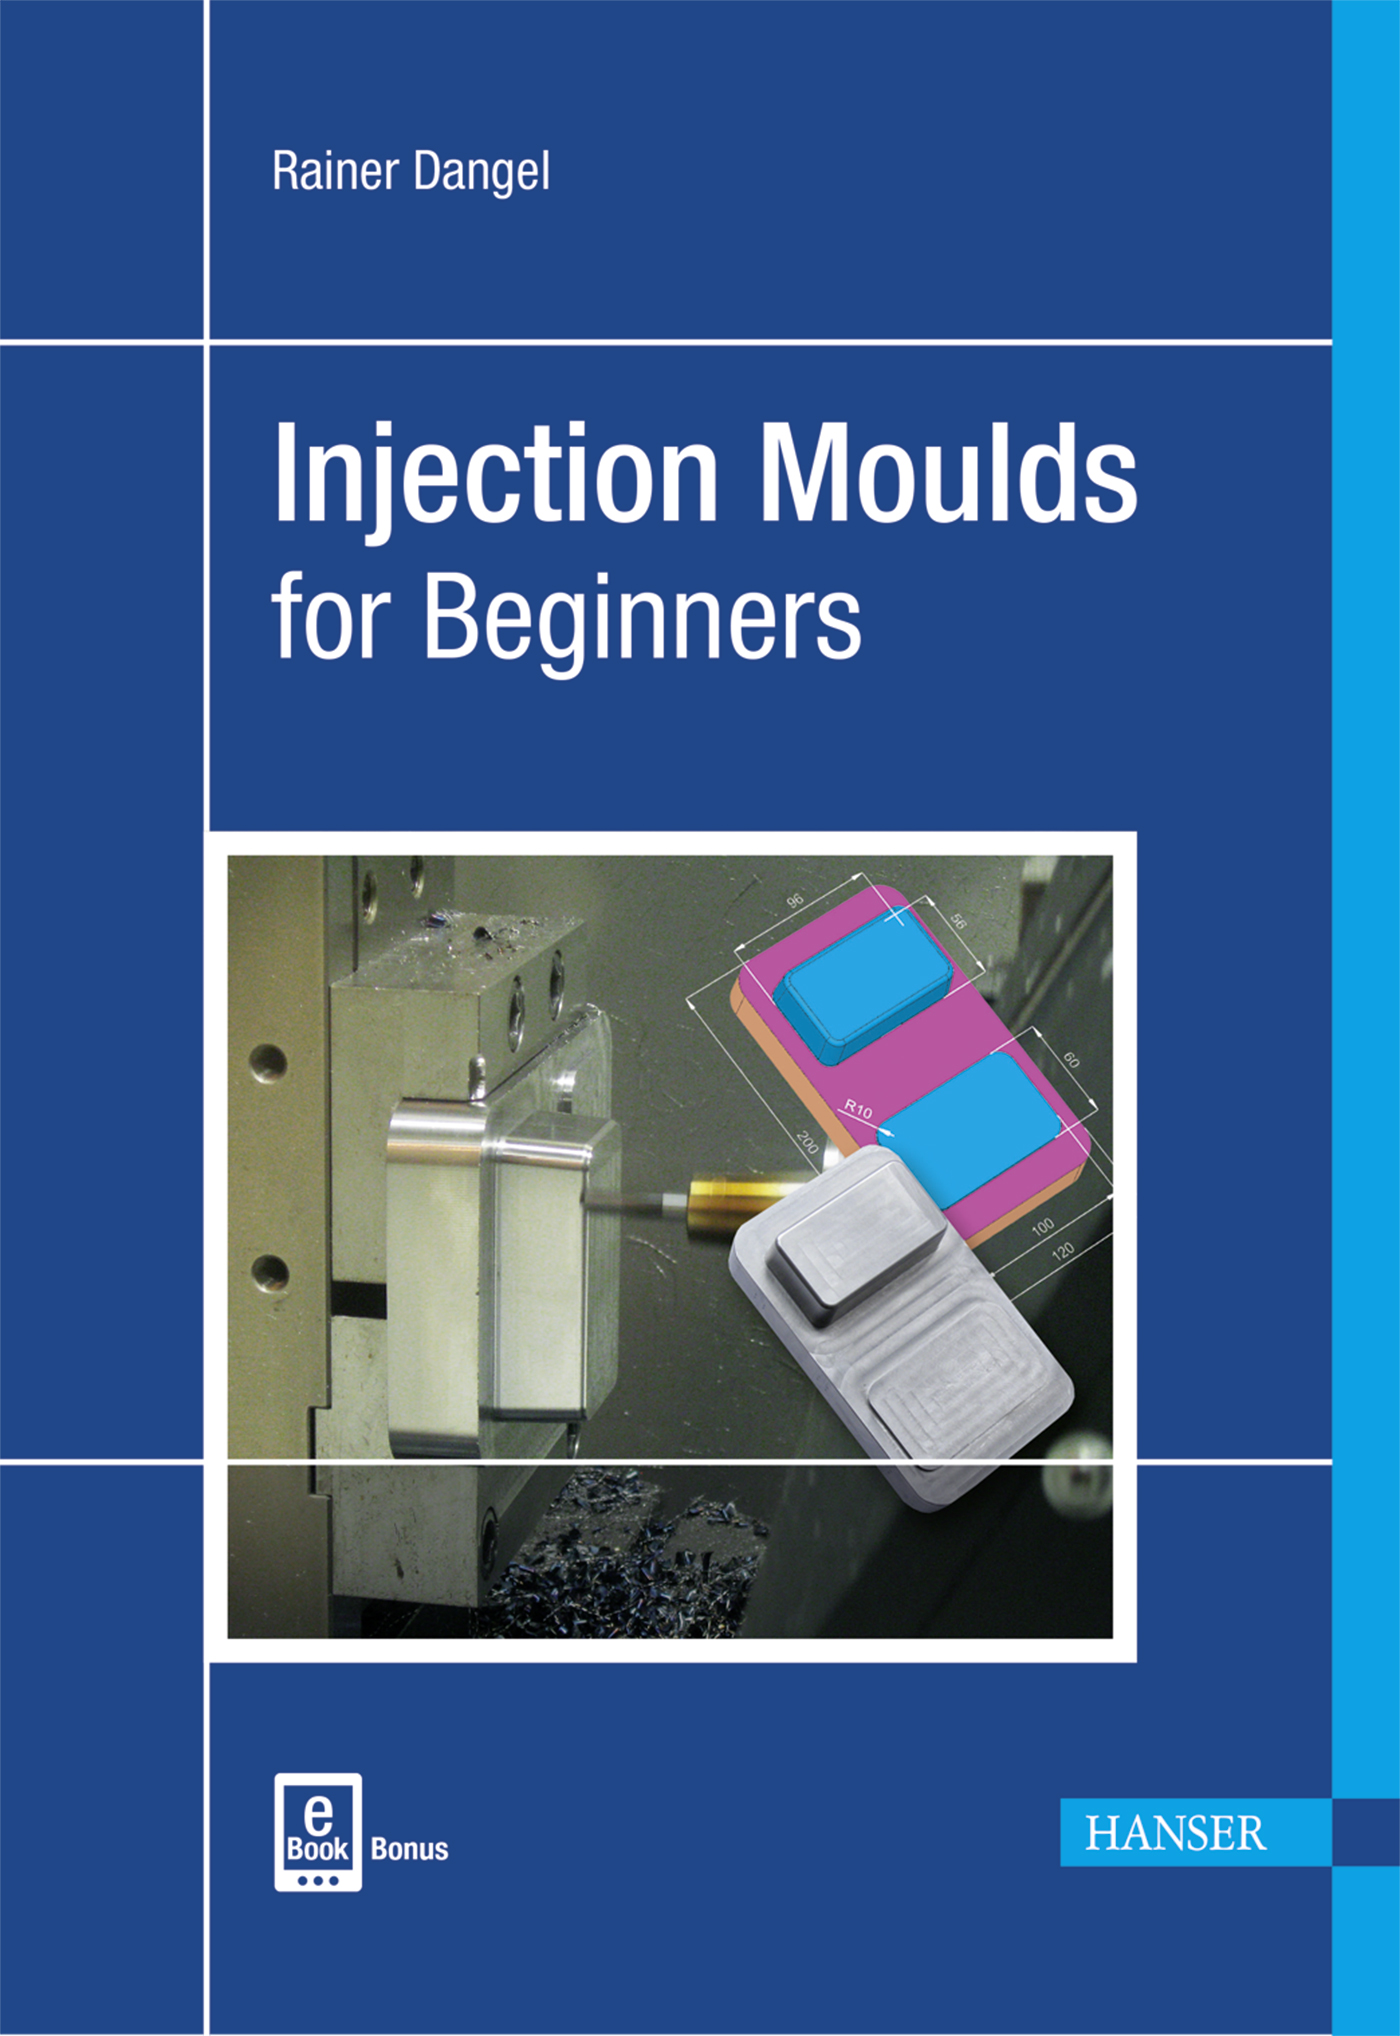 Dangel, Injection Moulds for Beginners, 978-1-56990-631-6